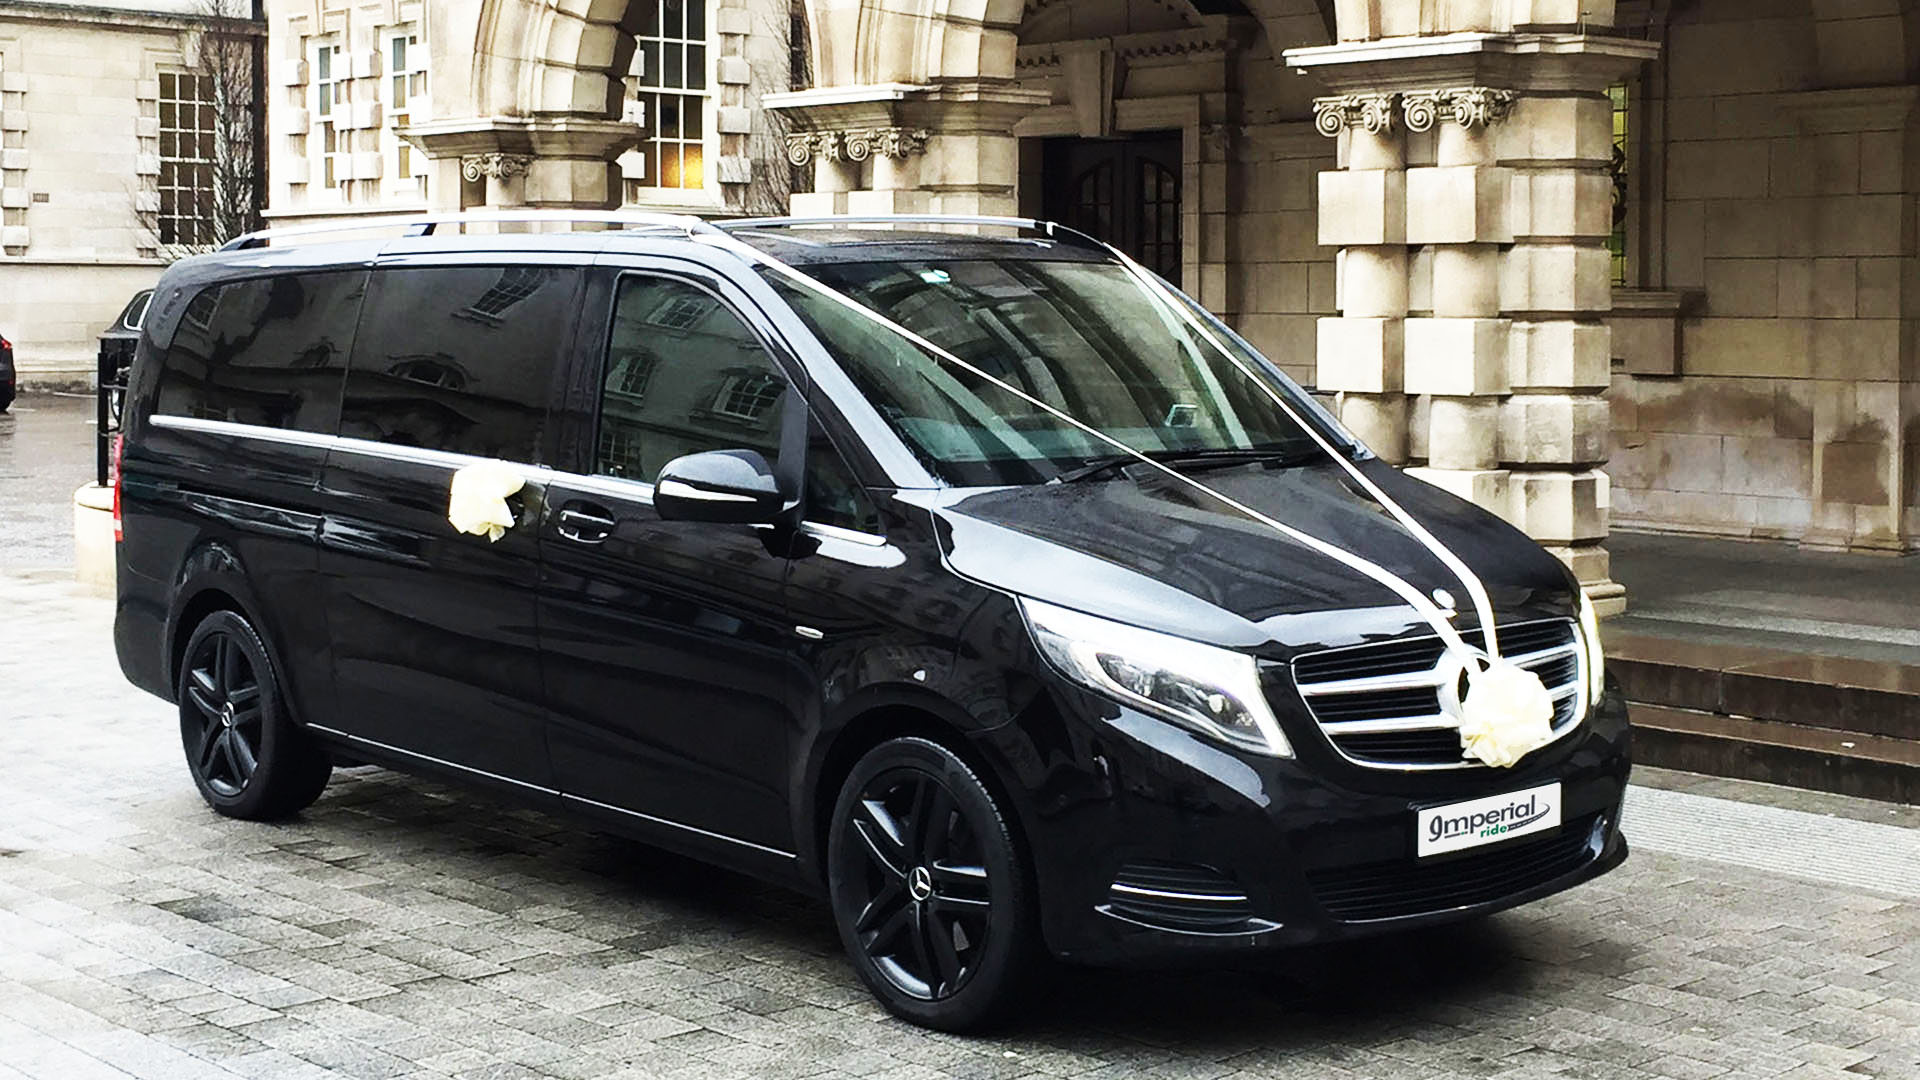 v-class-wedding-hire-in-redbridge